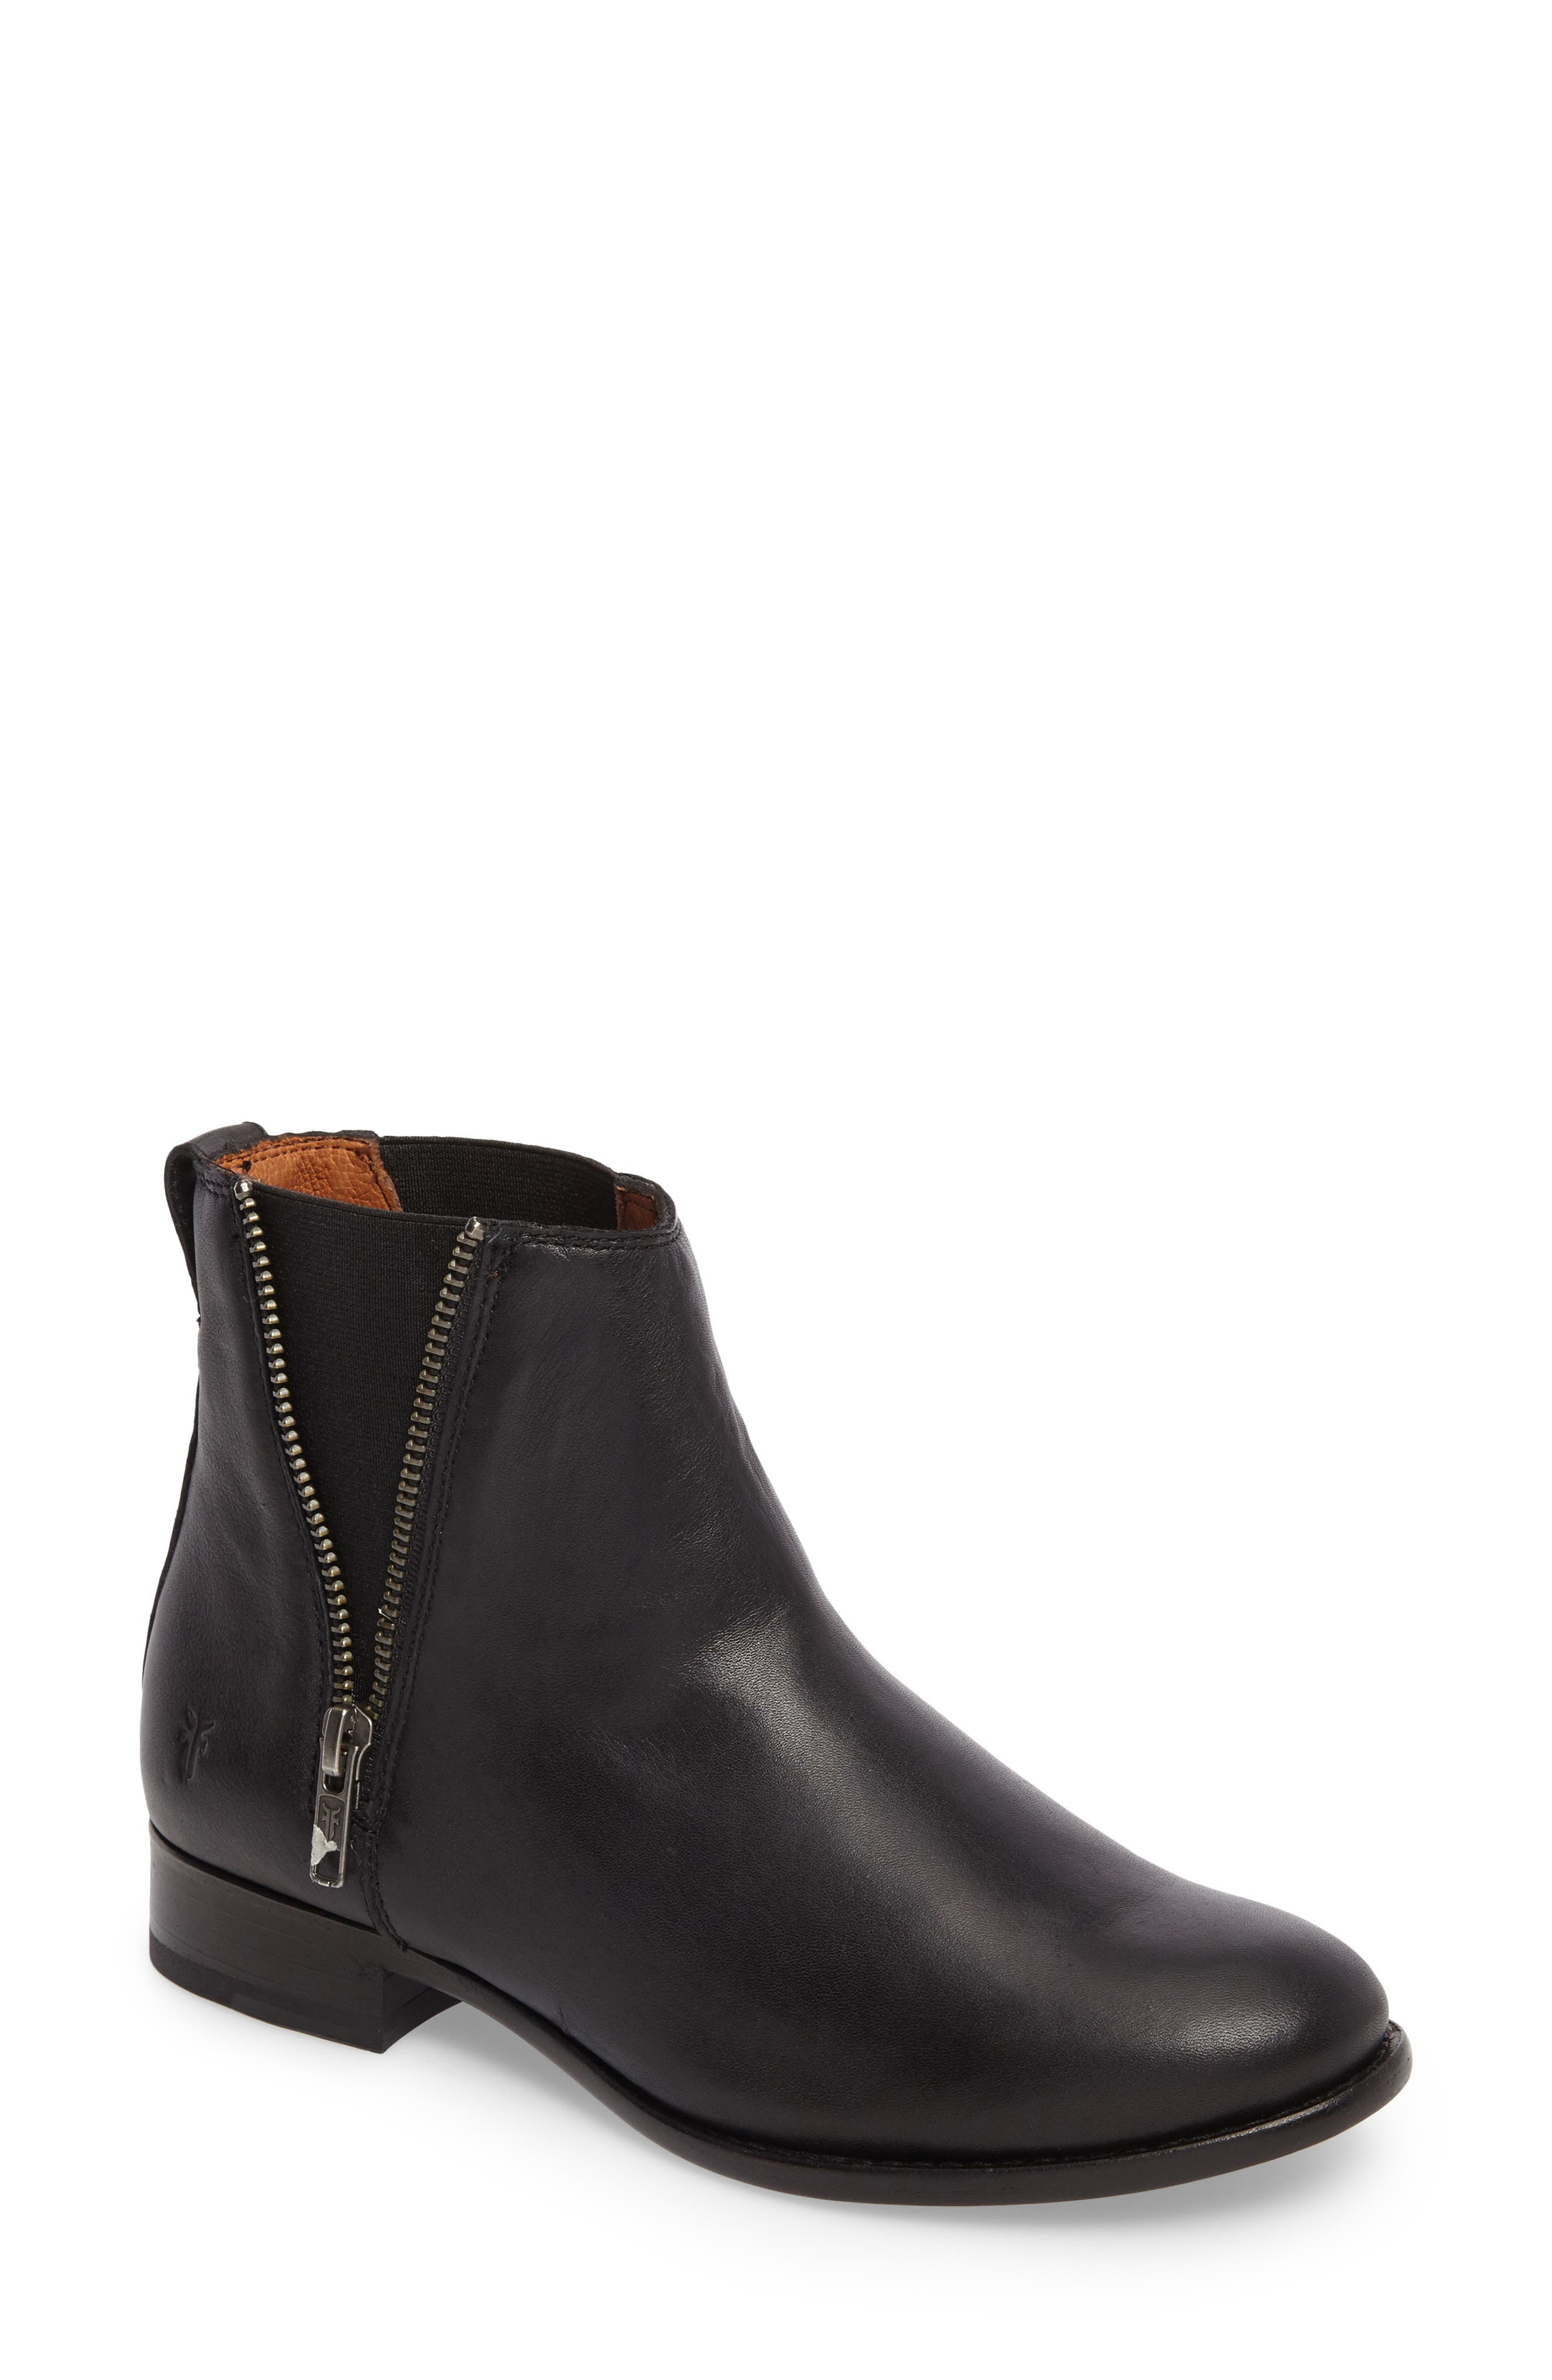 Carly Chelsea Boot,                             Main thumbnail 1, color,                             BLACK LEATHER